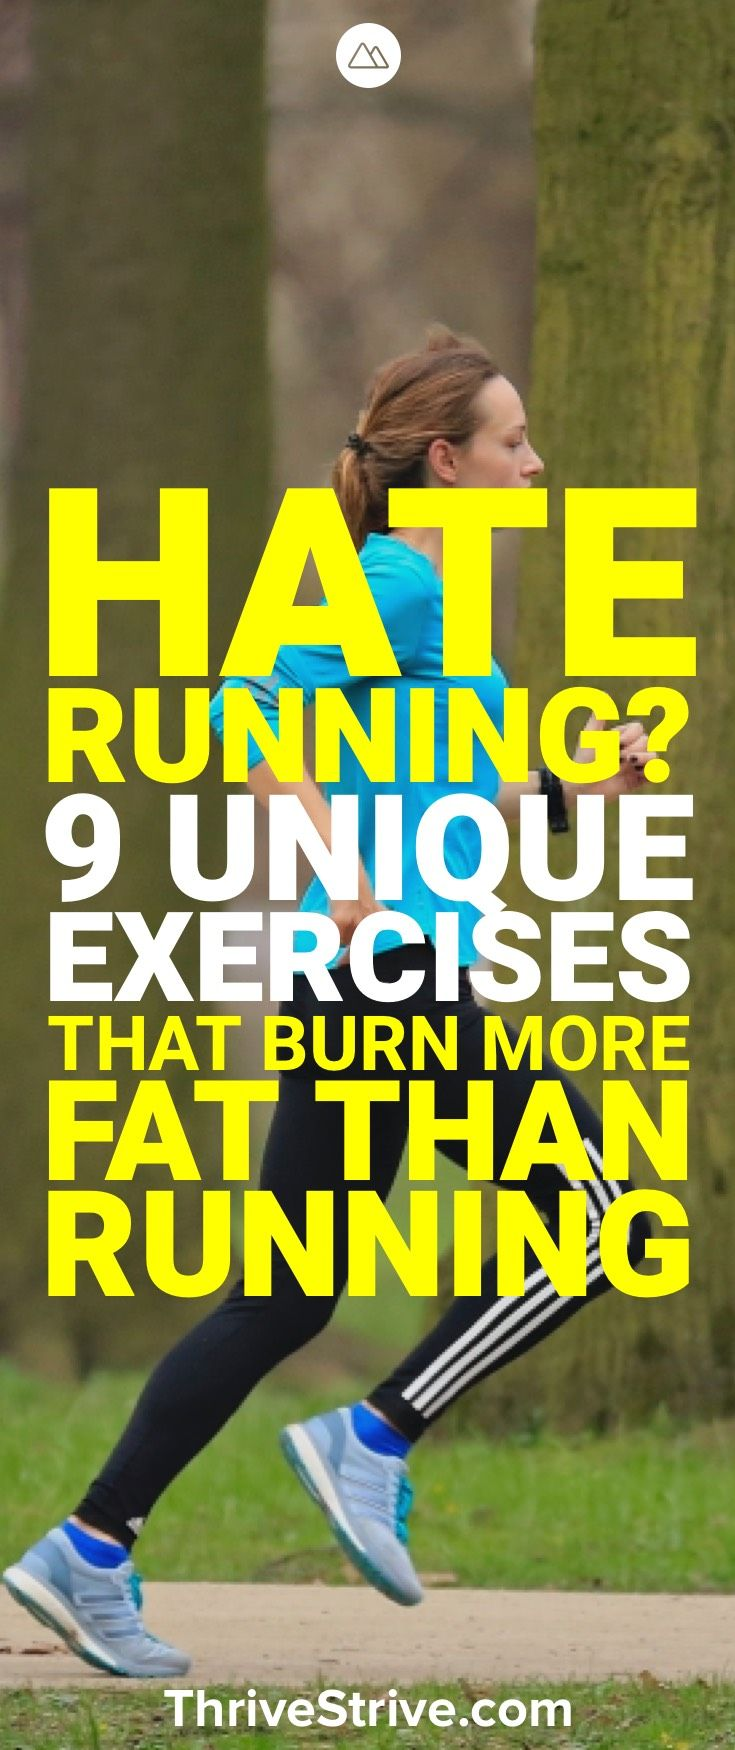 Some people like to jog to lose weight while others want to find other things. Here are 9 exercises to help you lose weight that don't require running.